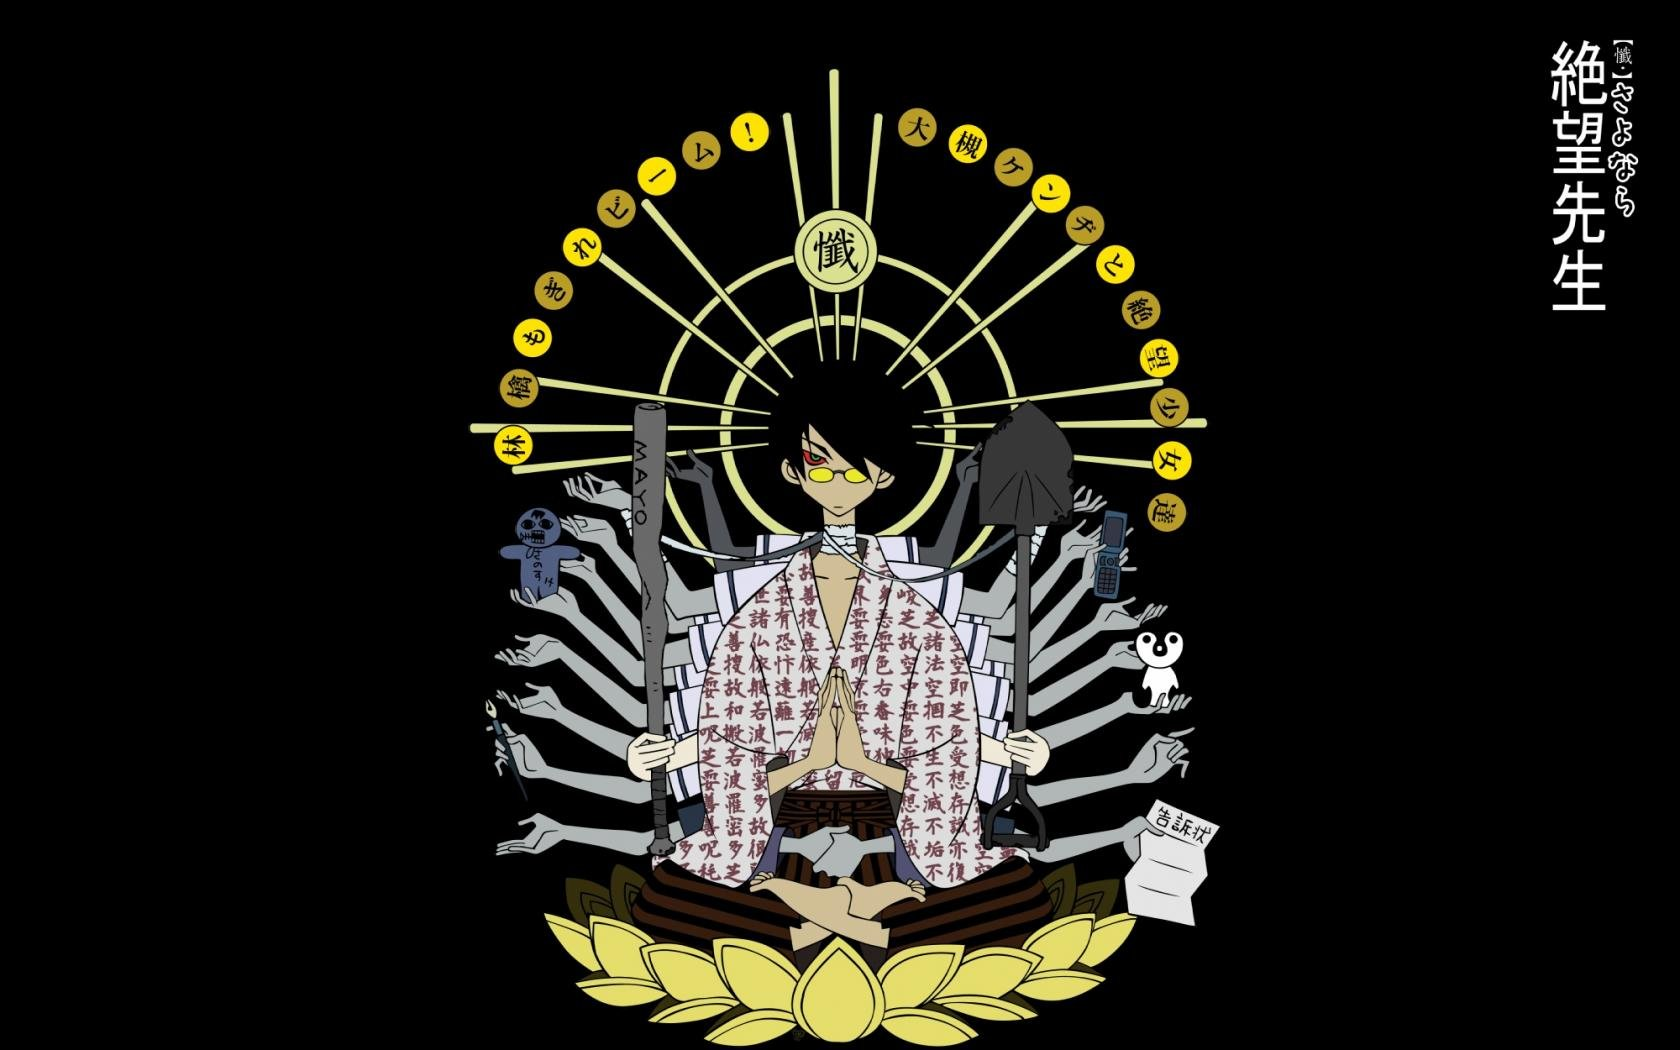 High resolution Sayonara, Zetsubou-Sensei hd 1680x1050 wallpaper ID:243977 for PC